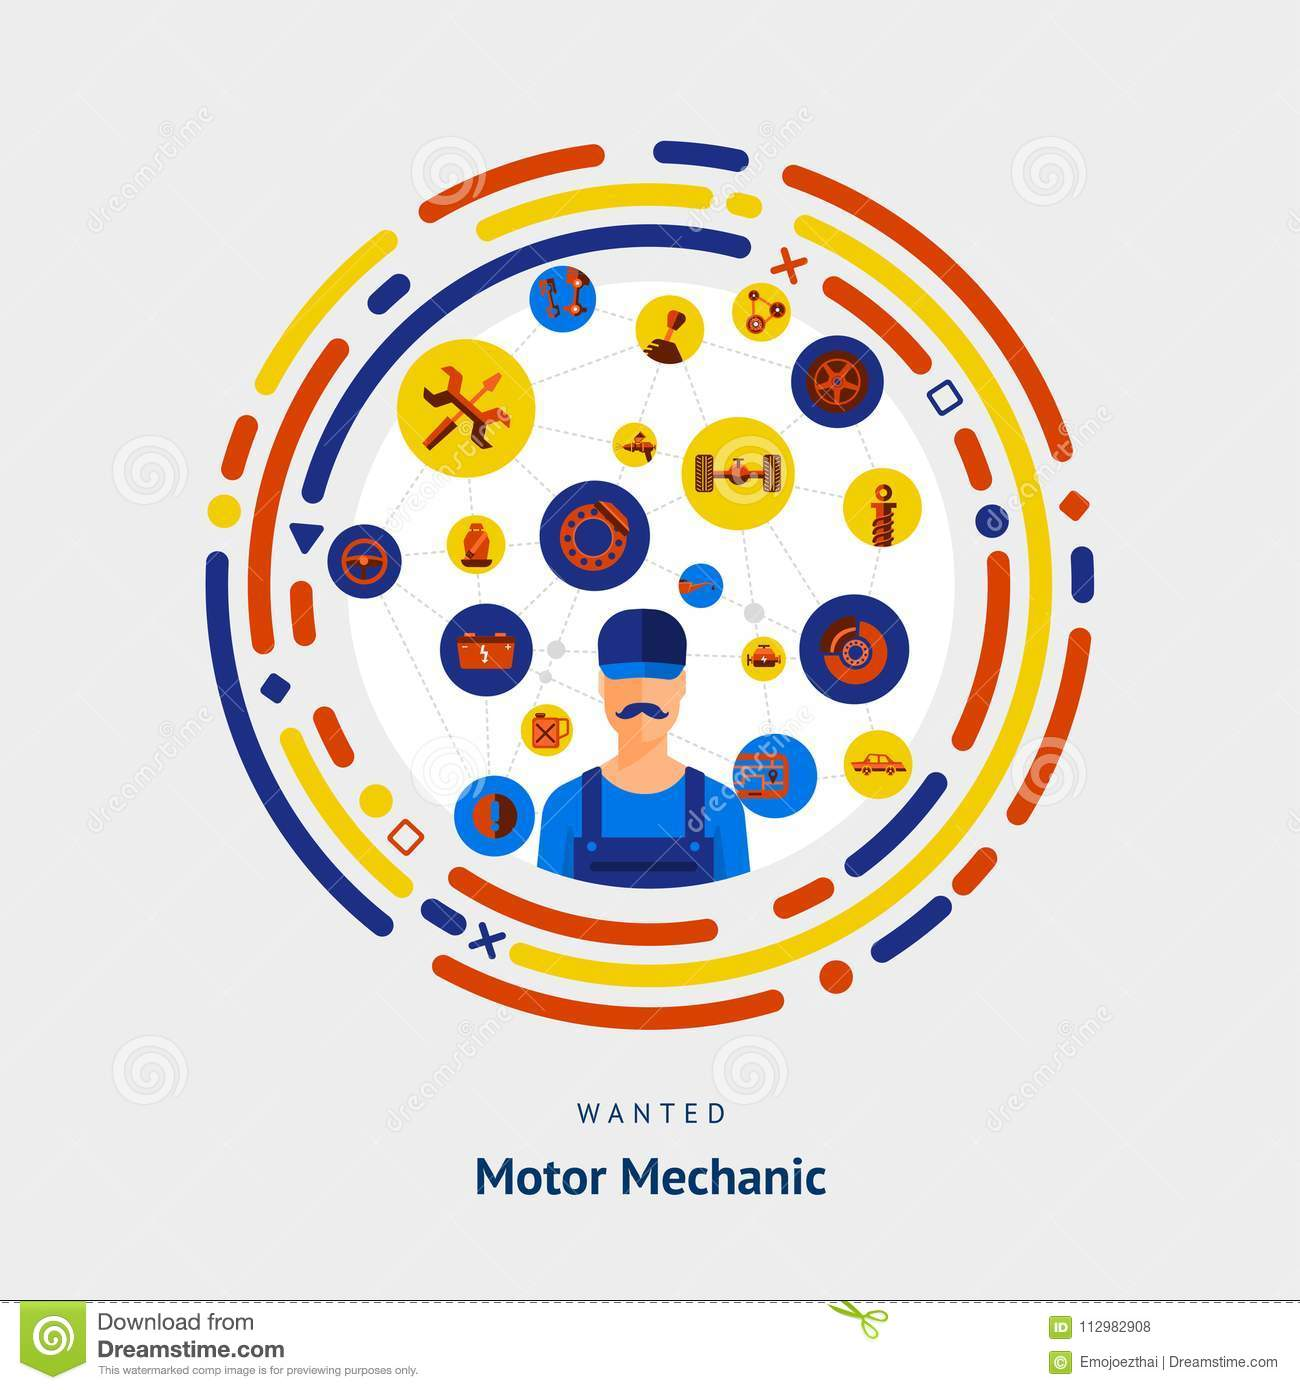 Vector illustrate flat design concept motor mechanician skill.